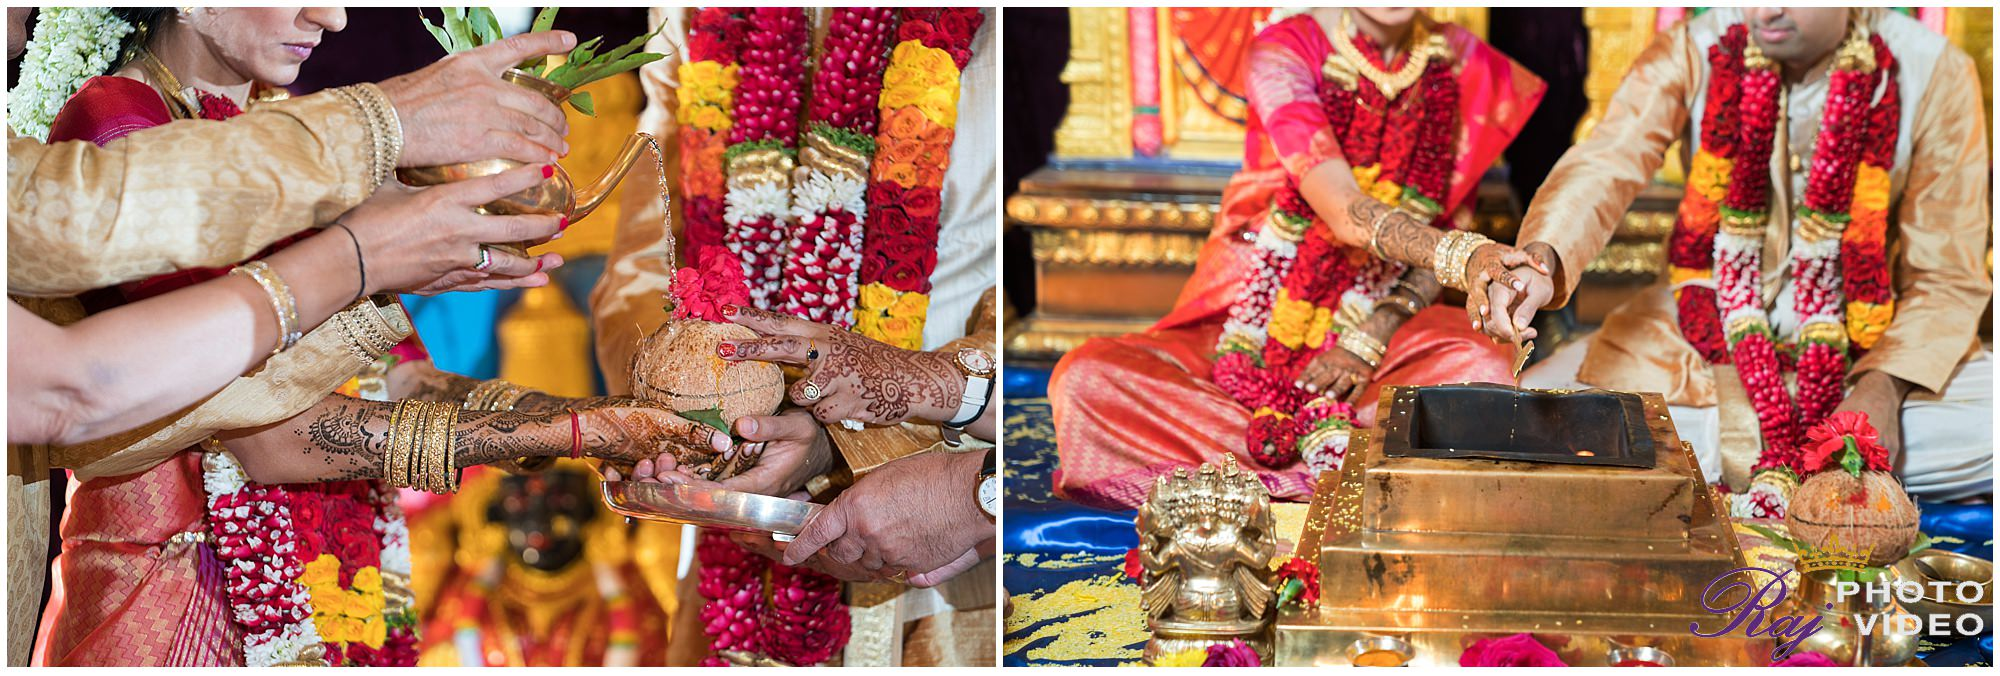 Sri_Venkata_Krishna_Kshetra_Temple_Tempe_Arizona_Indian_Wedding_Sapna_Shyam-1.jpg